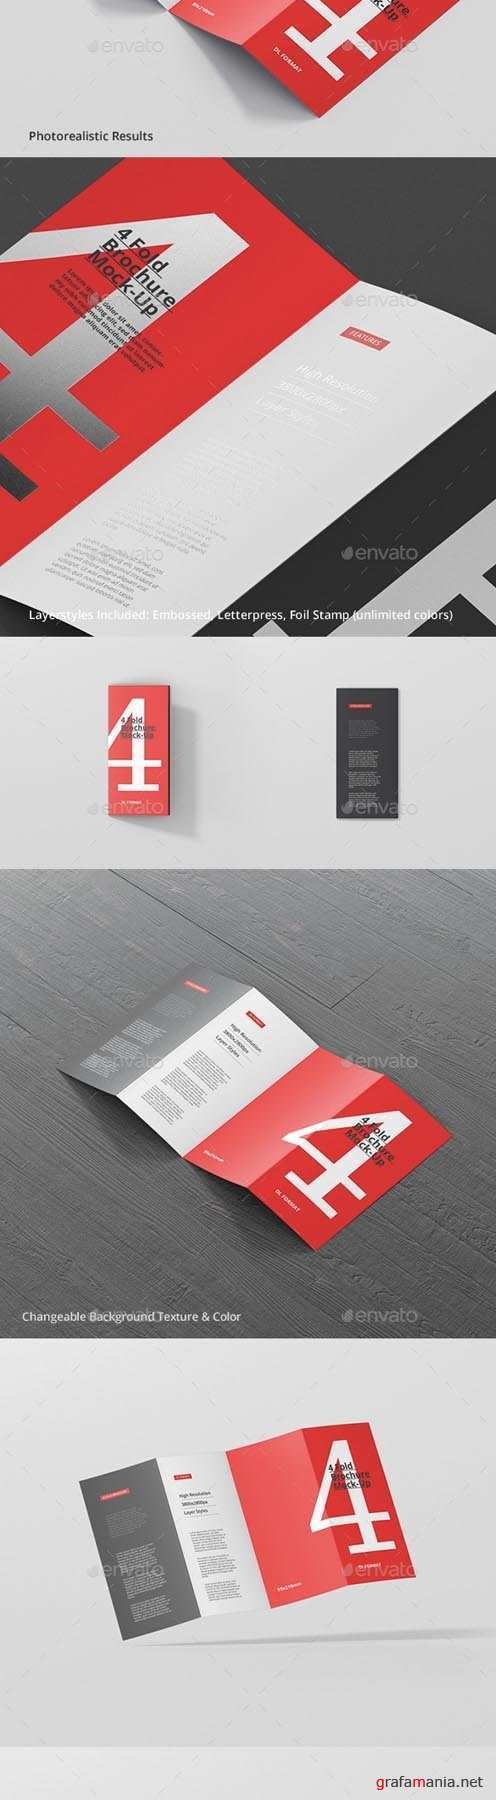 4-Fold Brochure Mockup - DL 99x210mm 20183322